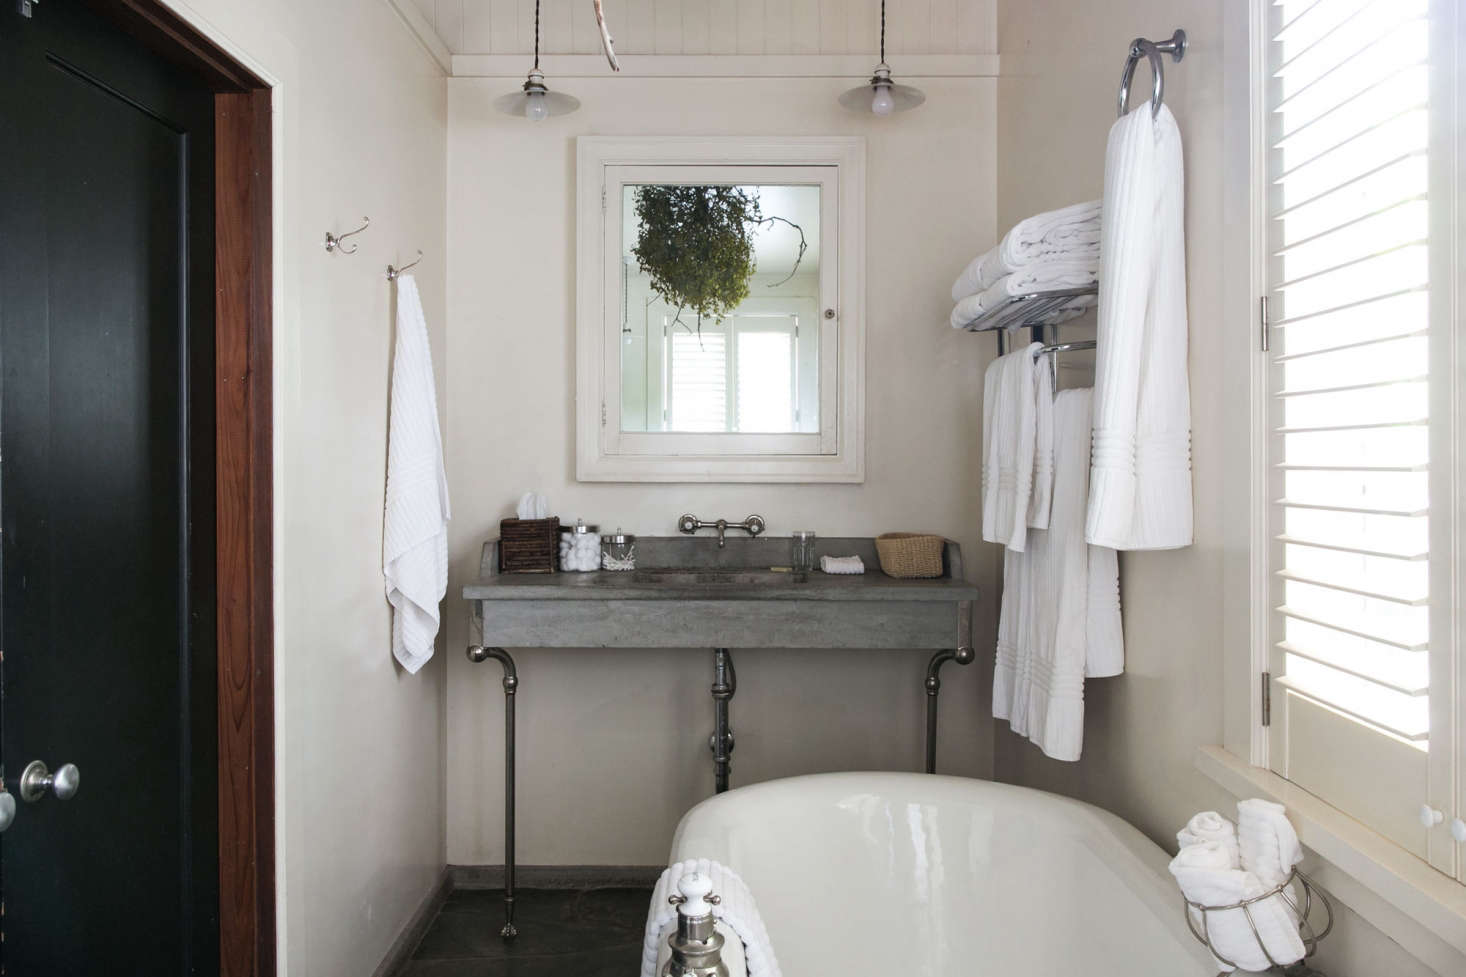 The simple bath with vintage fixtures and a concrete sink.